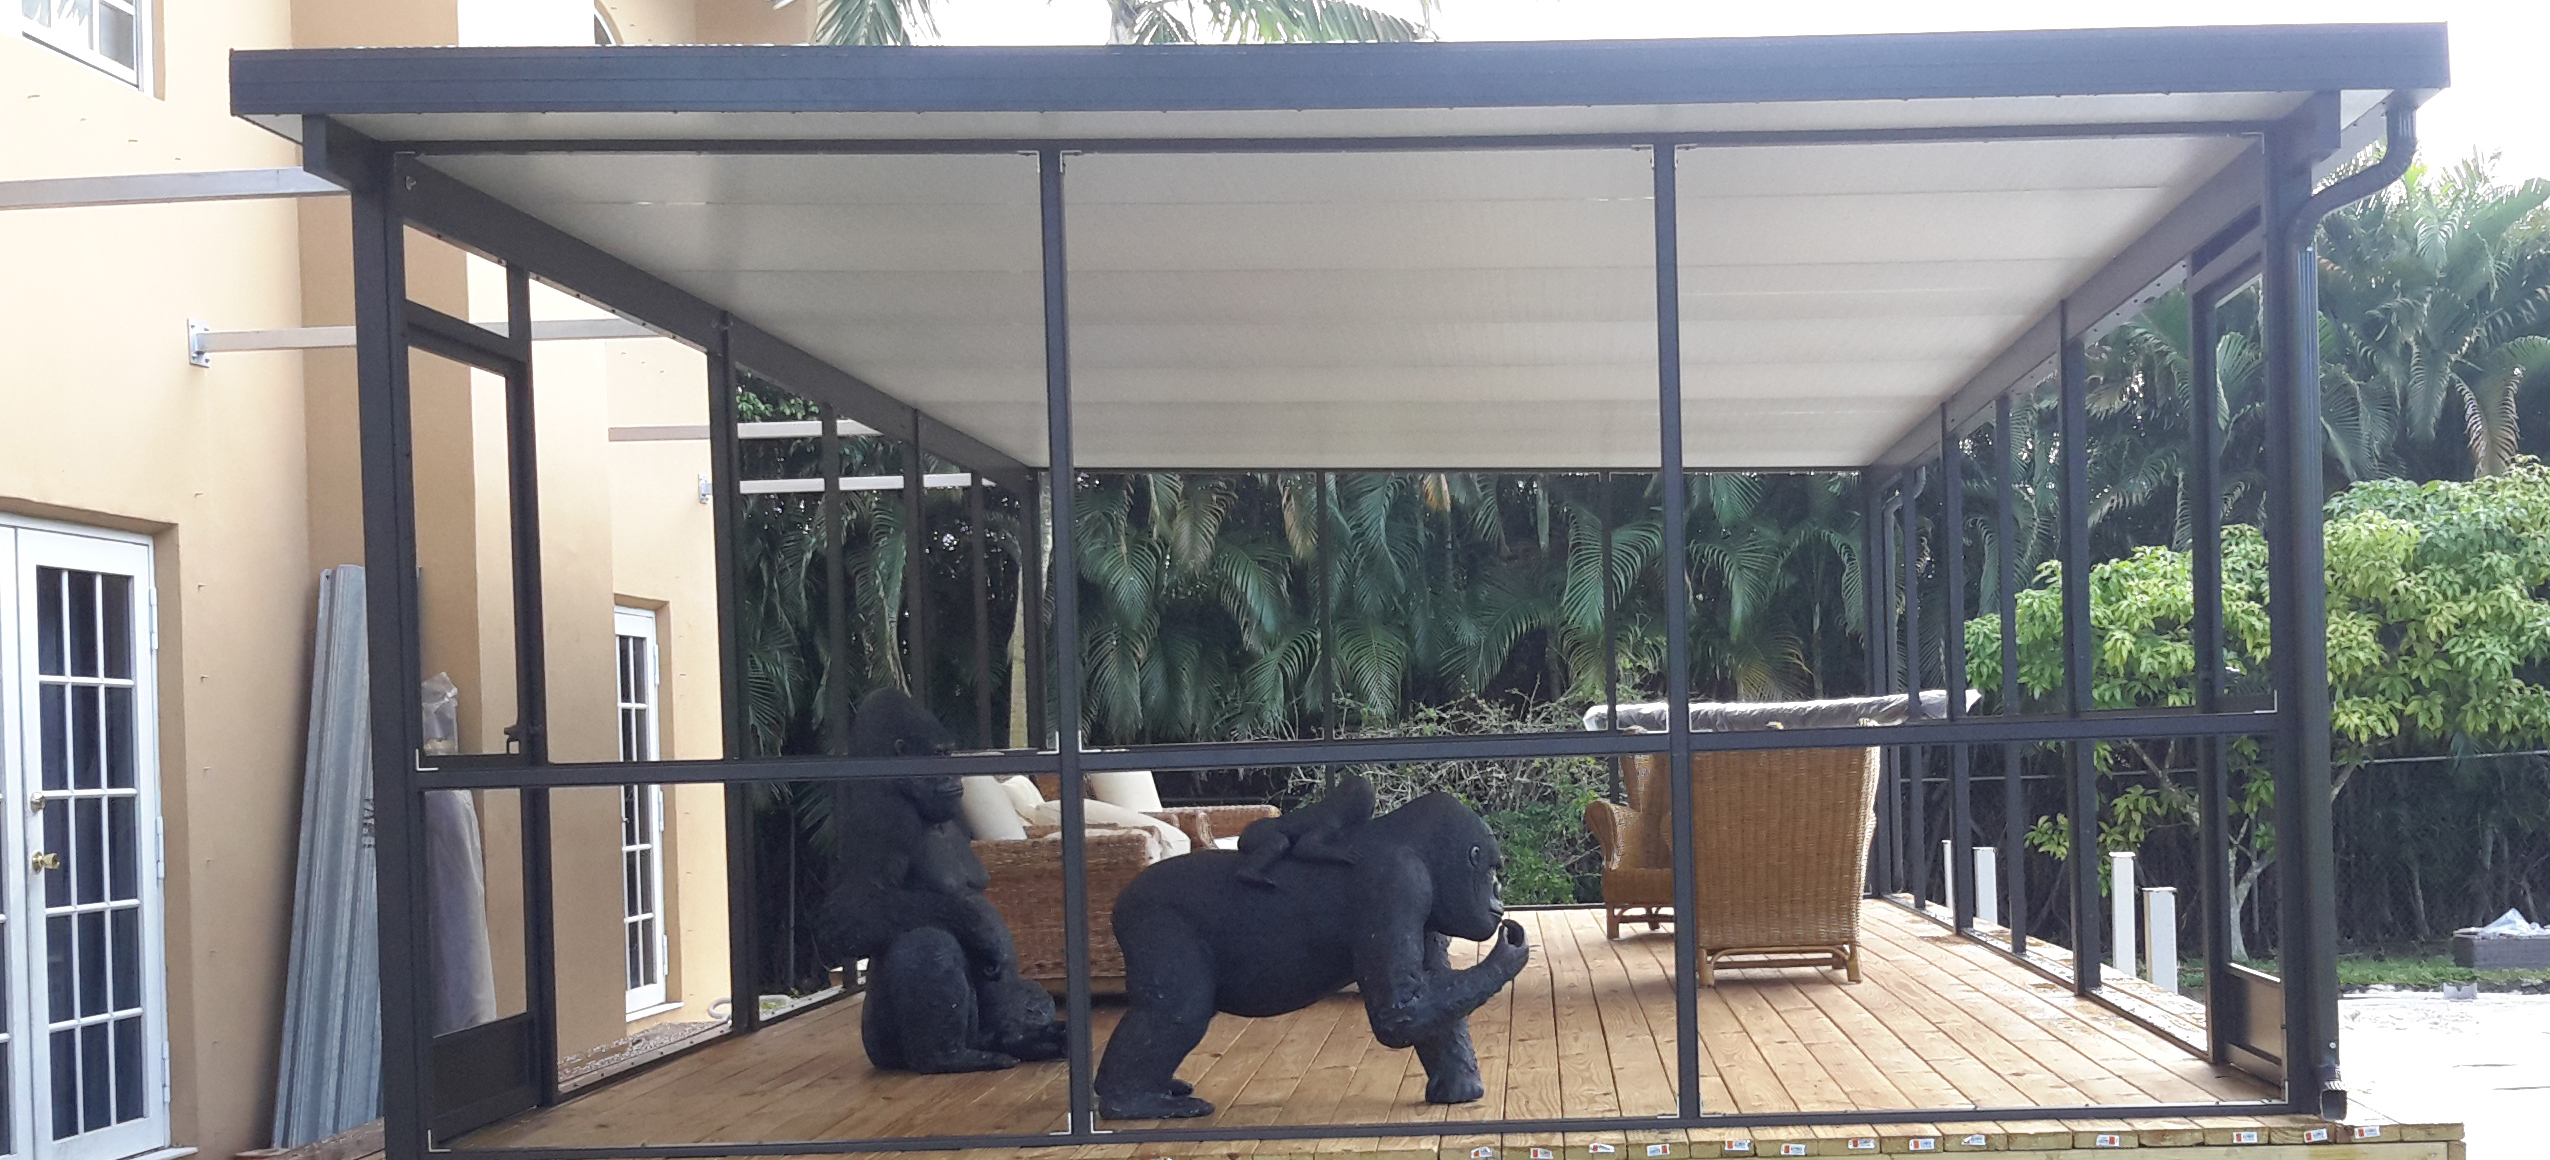 Contact Promax Awning